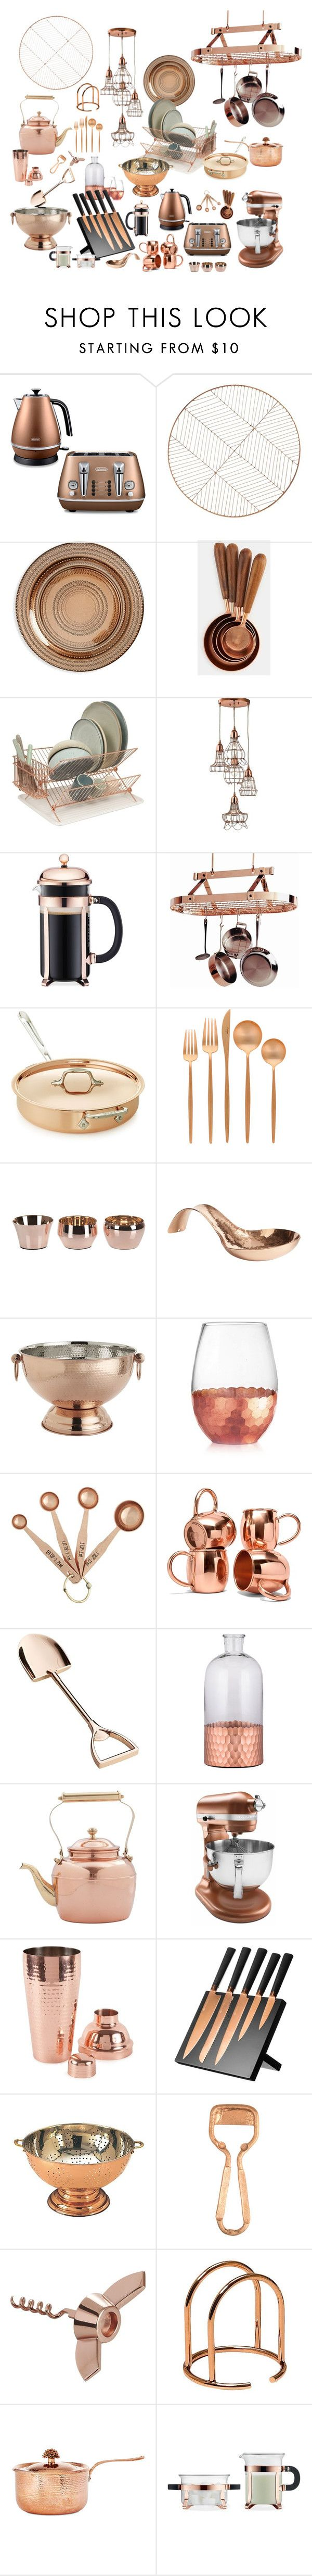 """Copper/Kitchen"" by heyjerseygirl ❤ liked on Polyvore featuring interior, interiors, interior design, home, home decor, interior decorating, DeLonghi, CB2, Europe2You and Bodum"